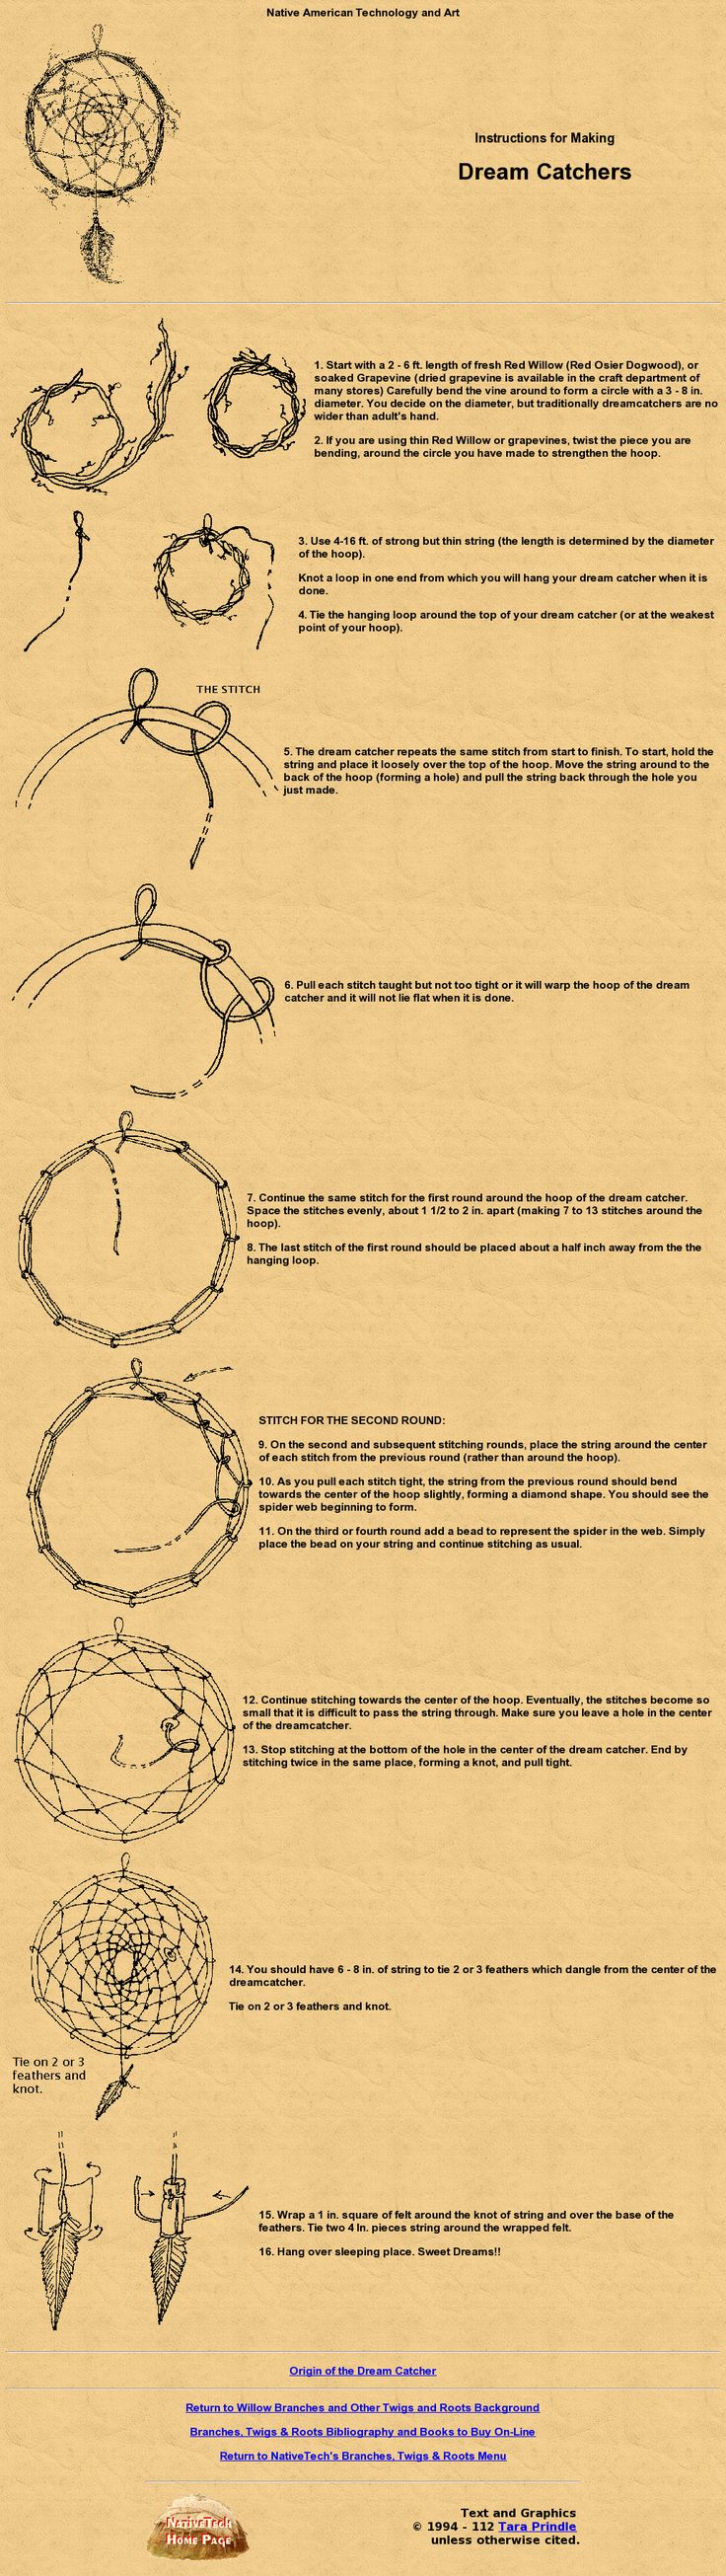 How to make a Dreamcatcher. Have you ever made one before?